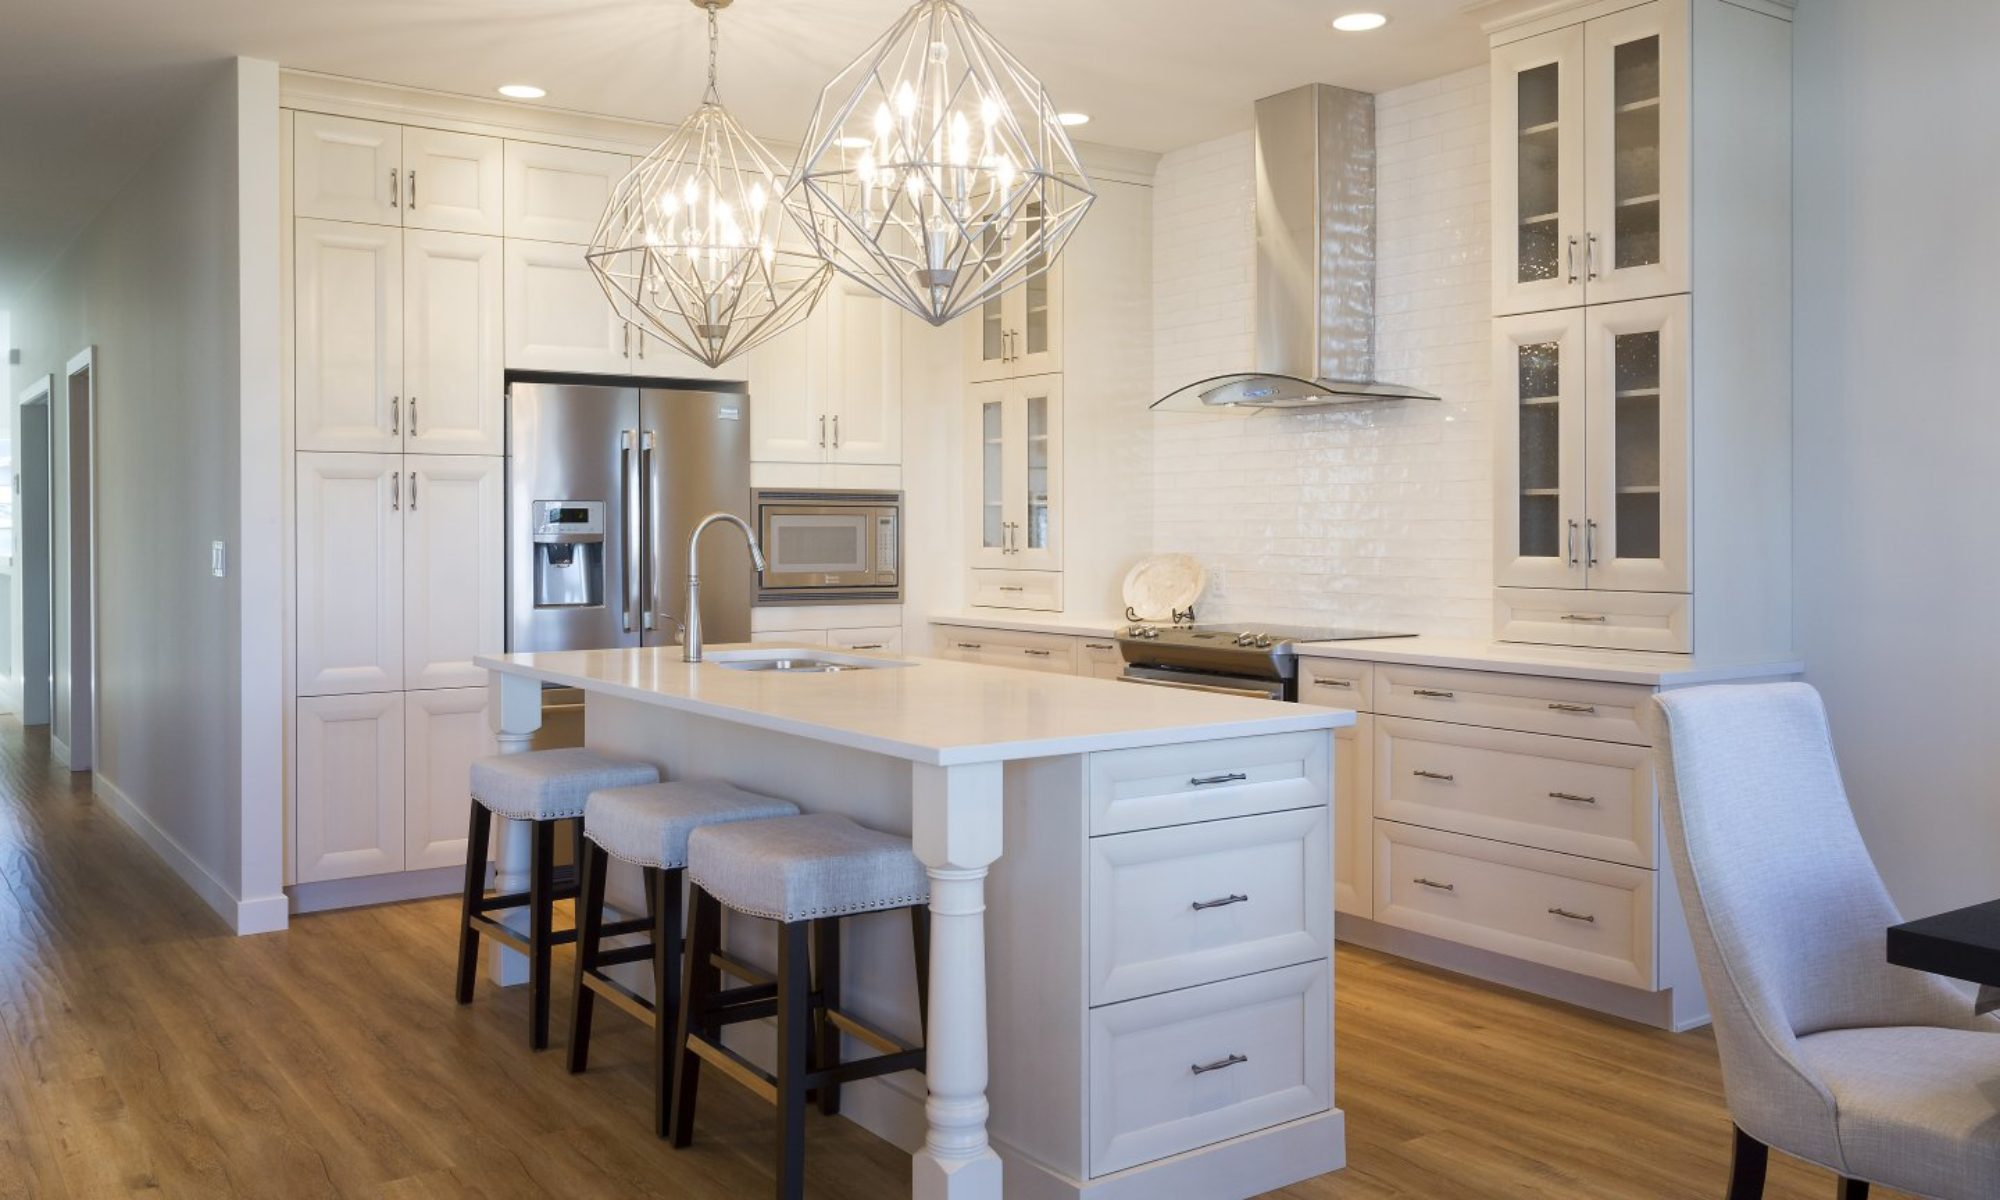 Kamloops Urban Cabinets Your Space Redesigned The Way You Want It